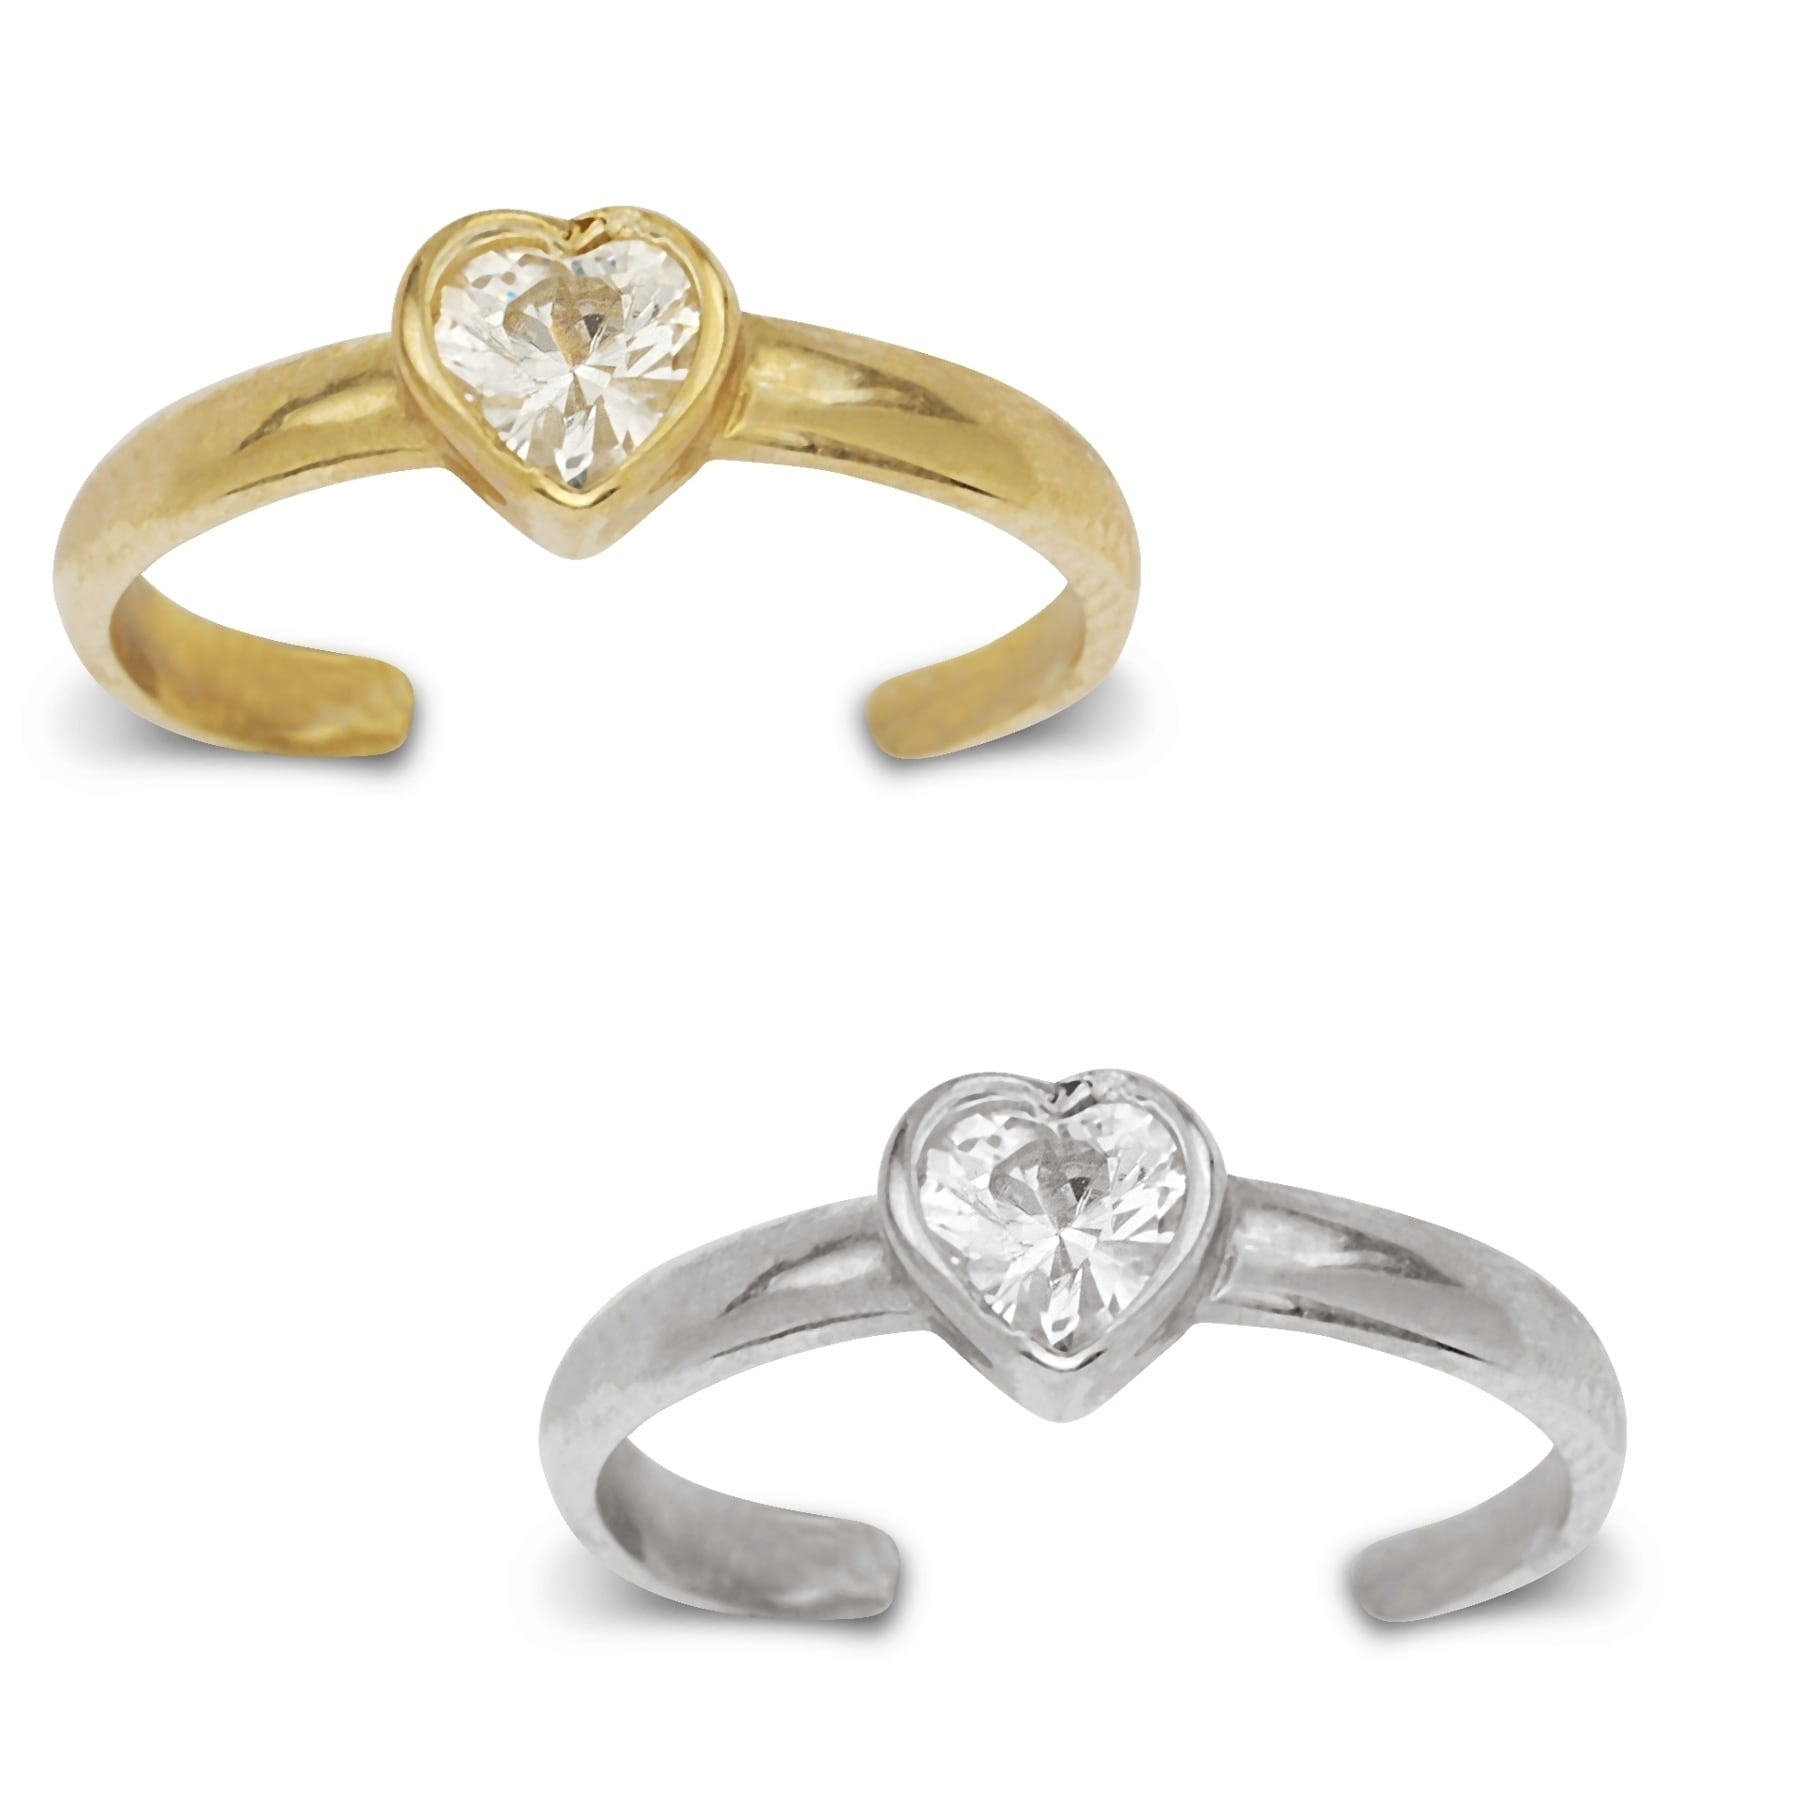 14K Yellow Or White Gold Adjustable Heart Shaped Cubic Zirconia Regarding Recent 14K Toe Rings (View 5 of 25)